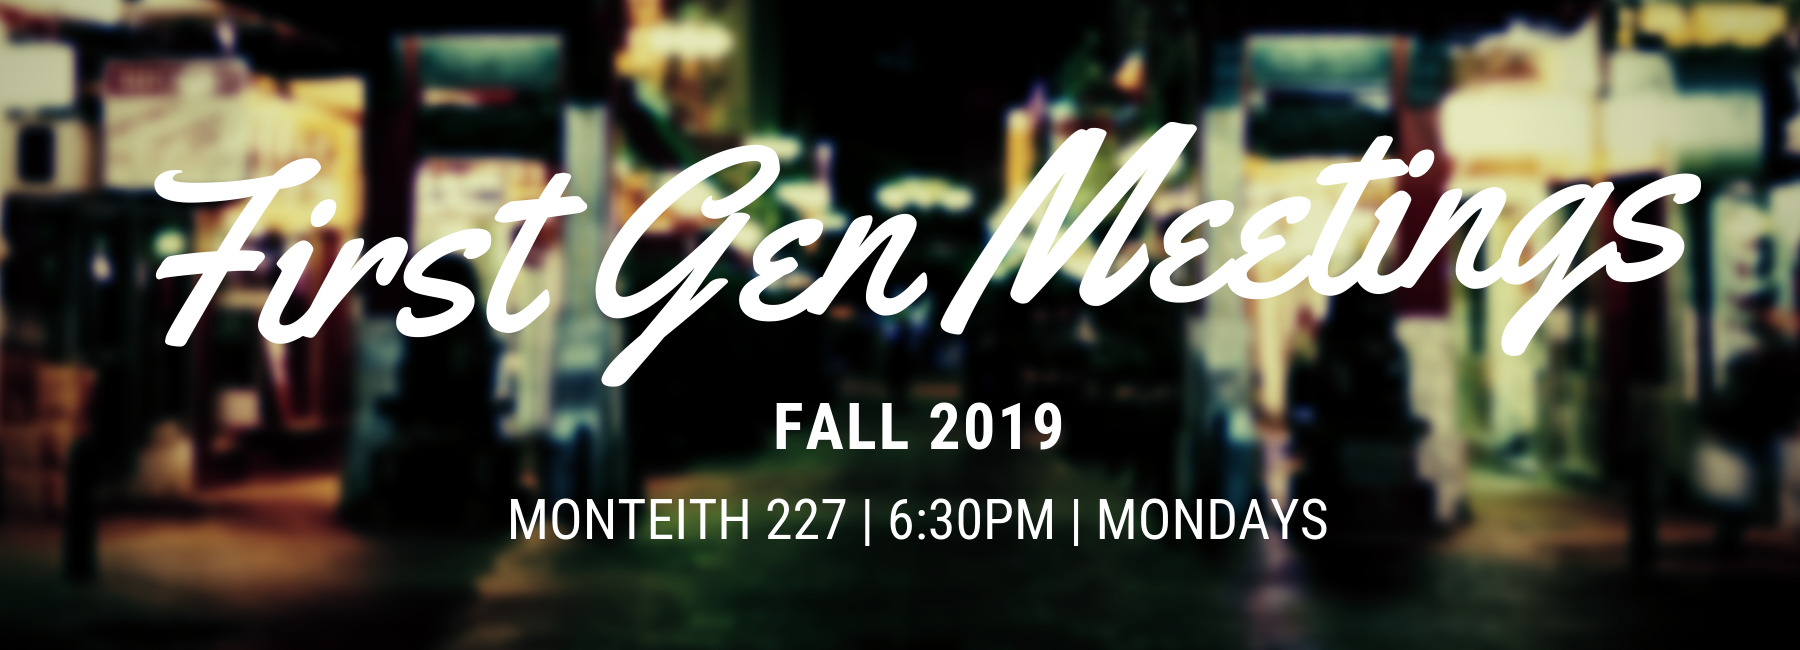 fall 19 meeting